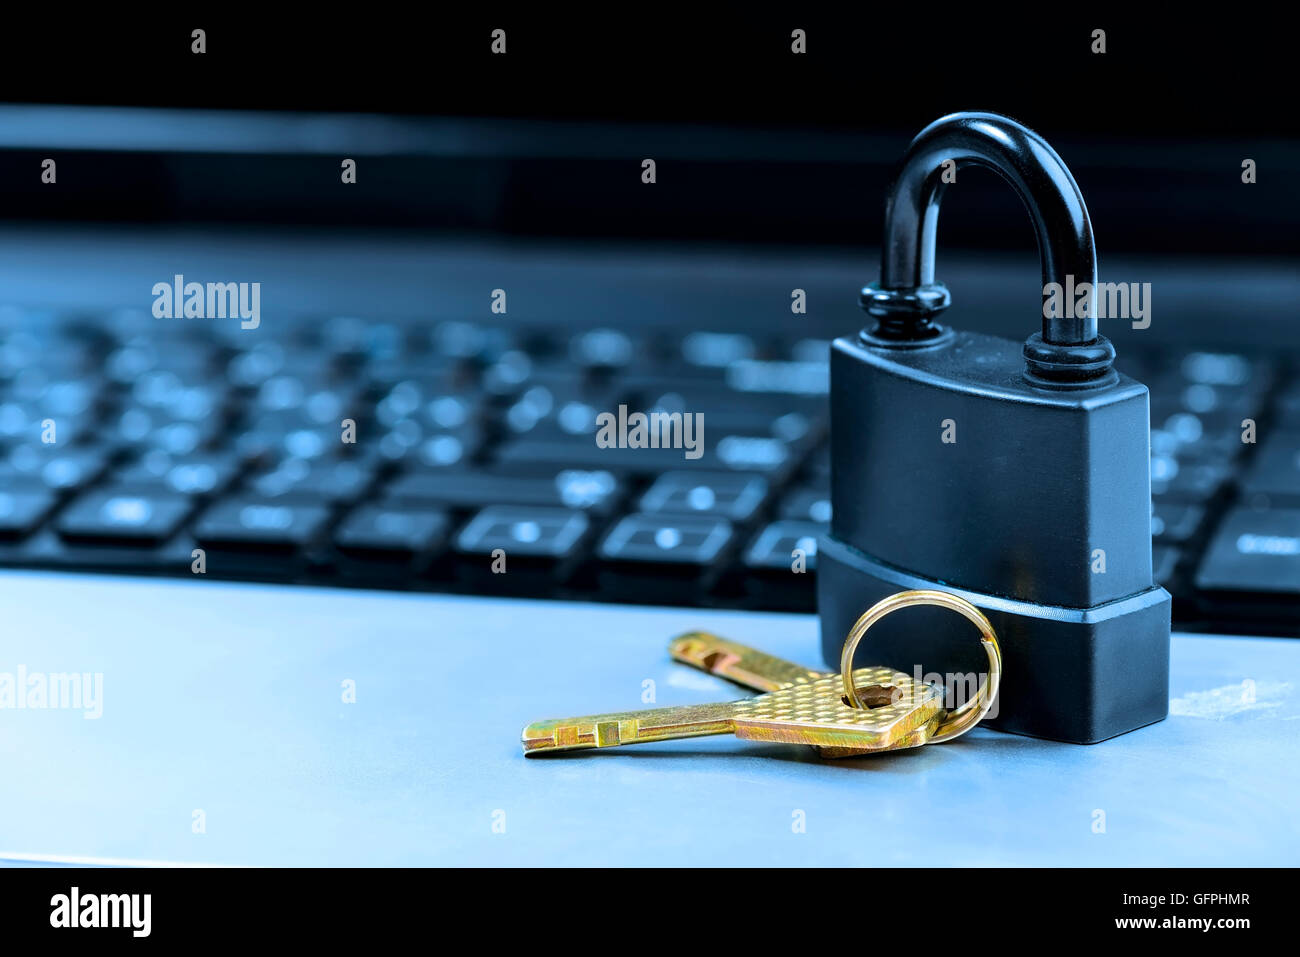 Lock on laptop keyboard with shallow depth of field toned in blue - Stock Image